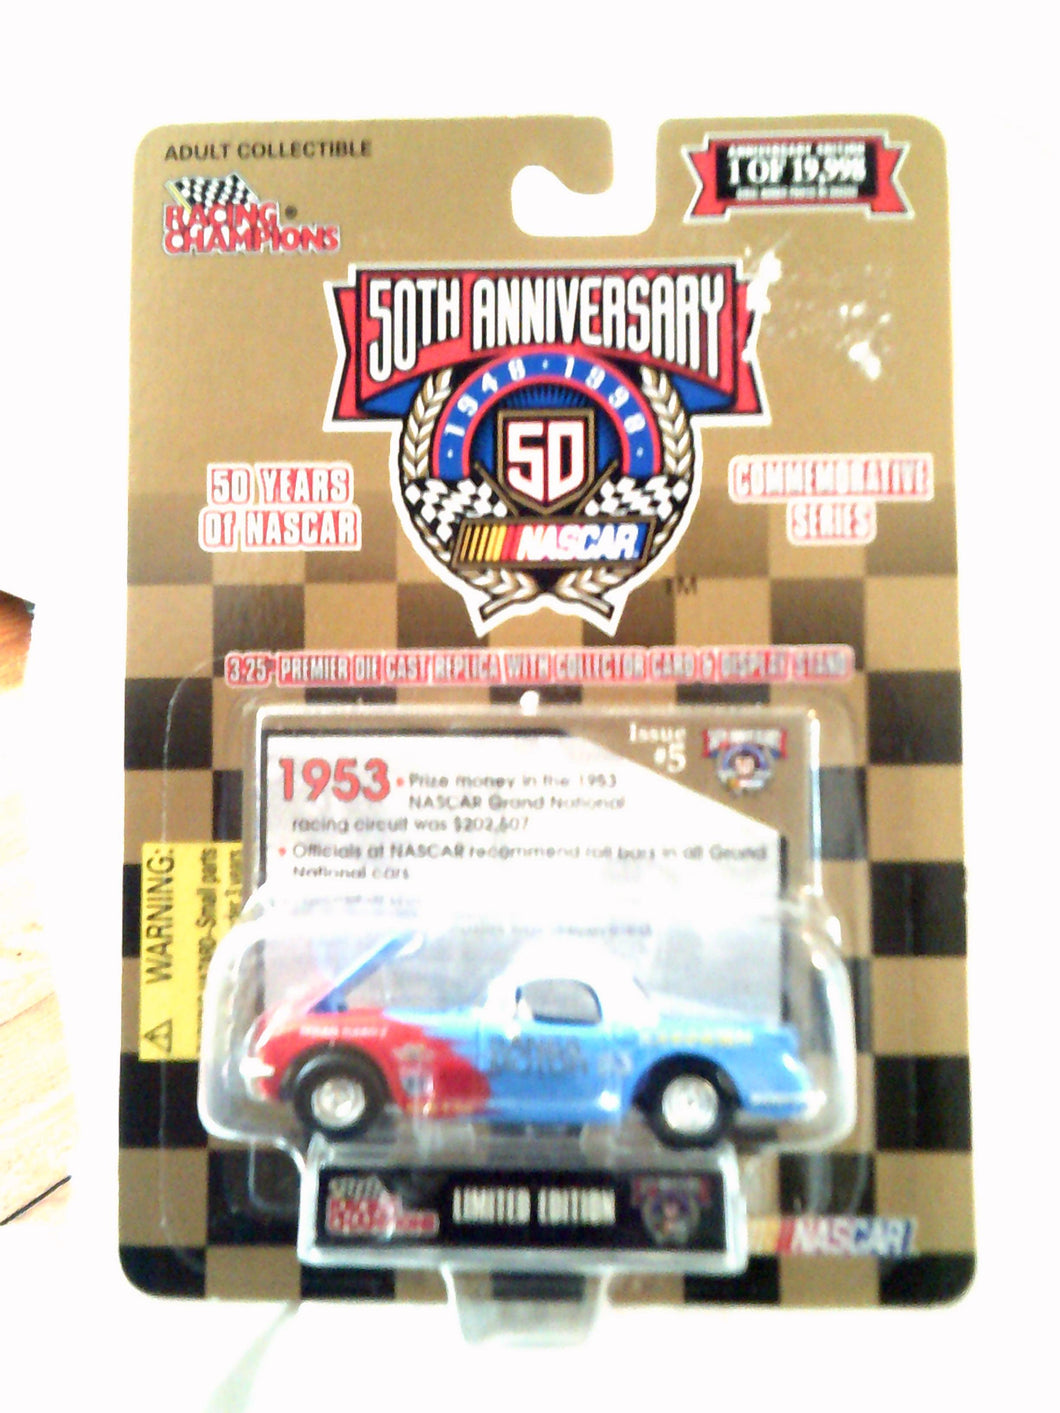 Nascar 50th Anniversary Die Cast Commemorative Gold Series Car - New